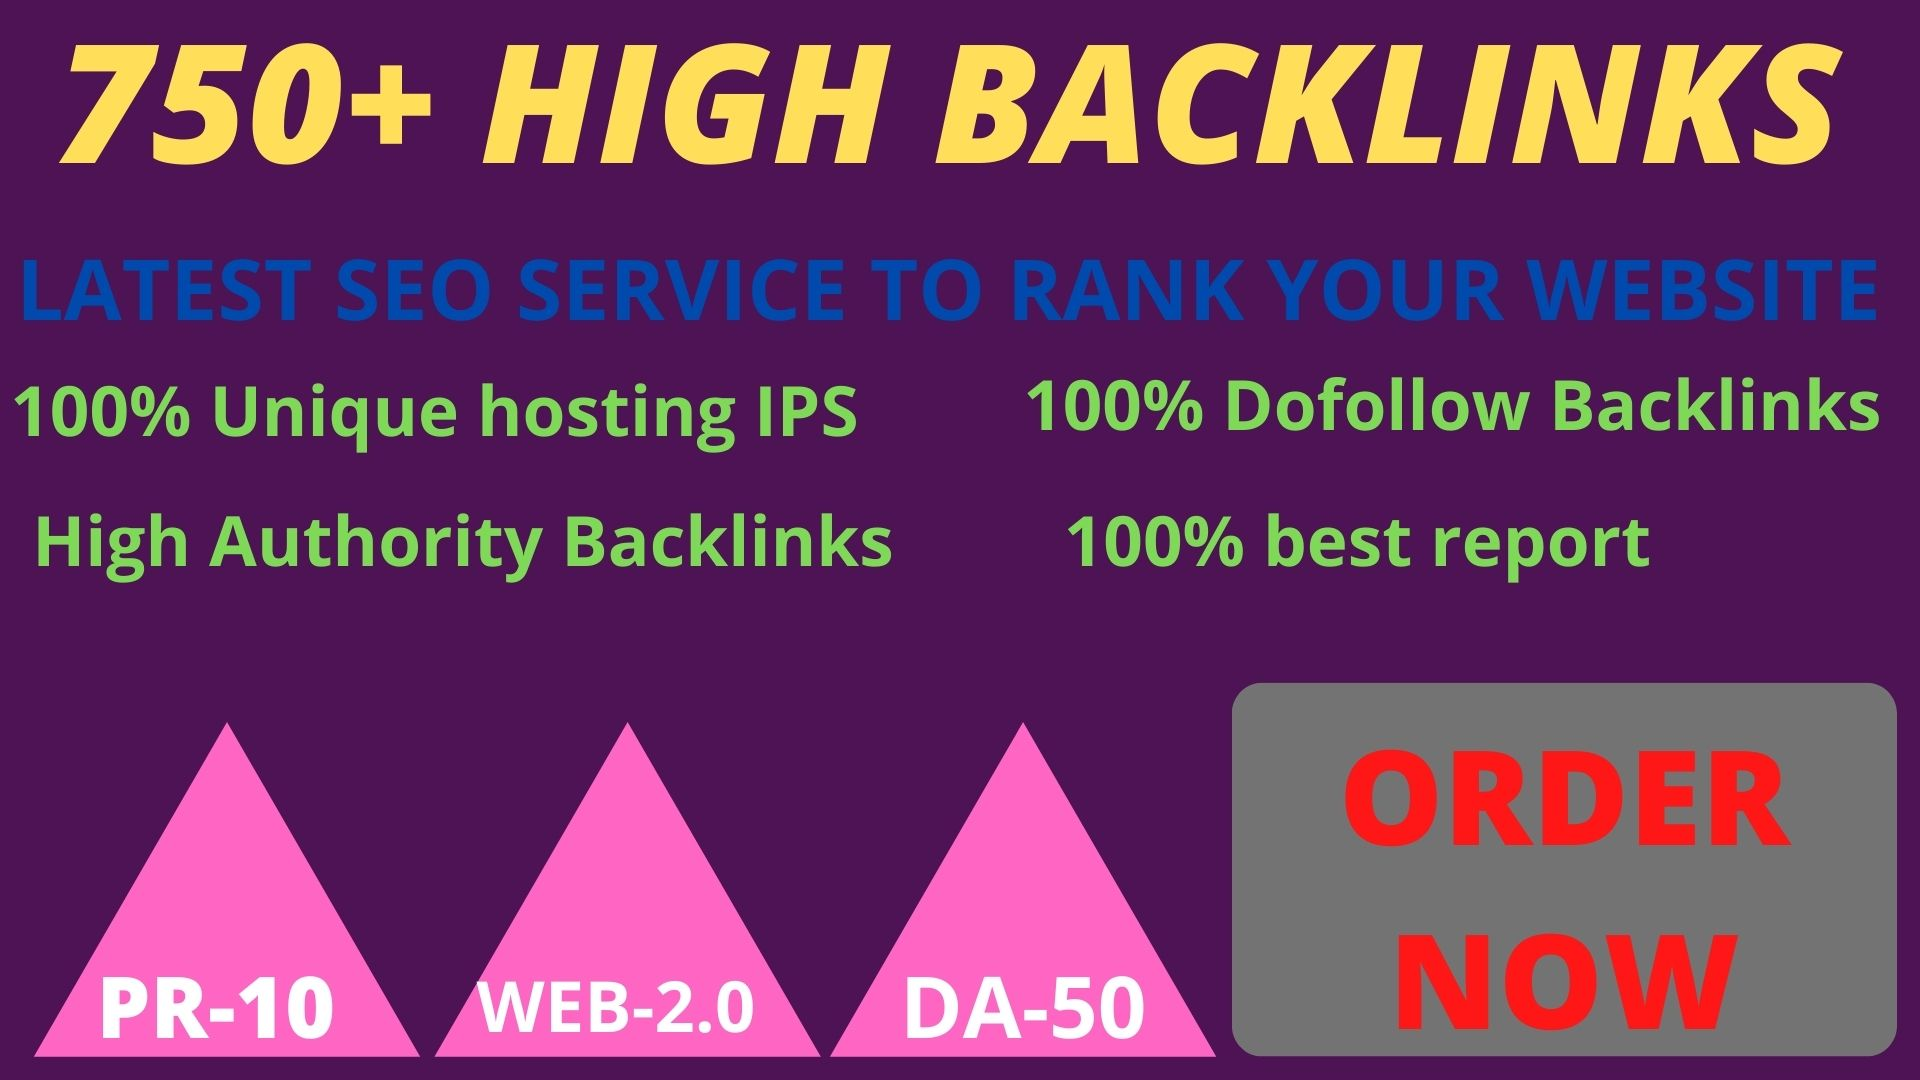 Letest update2021 with 750+ pbn backlinks with high DA /PA on your homepage with a unique website.